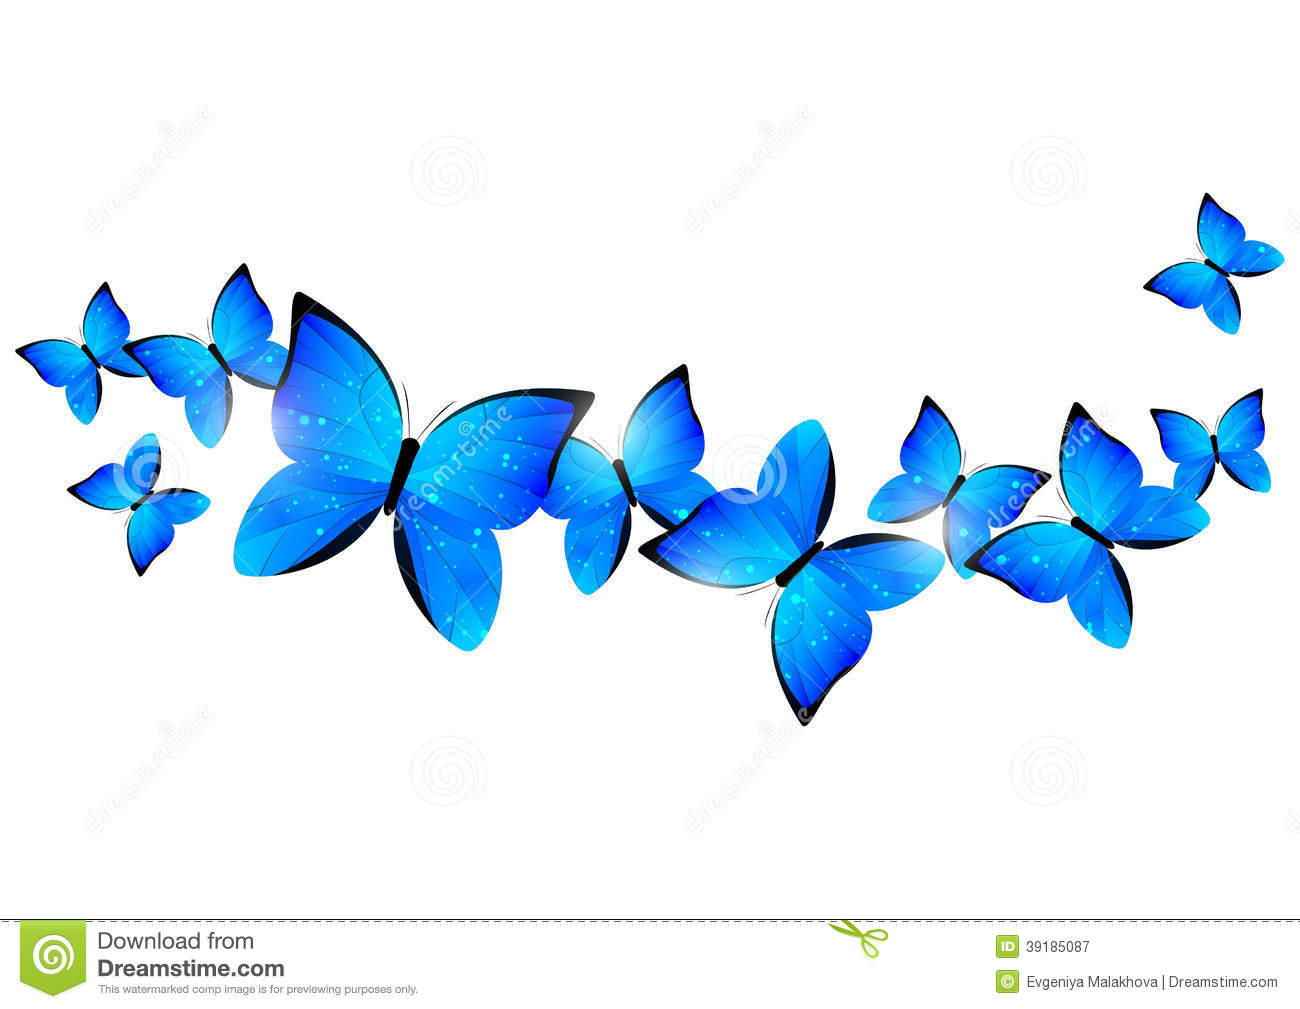 Blue butterflies border stock vector. Illustration of light - 39185087